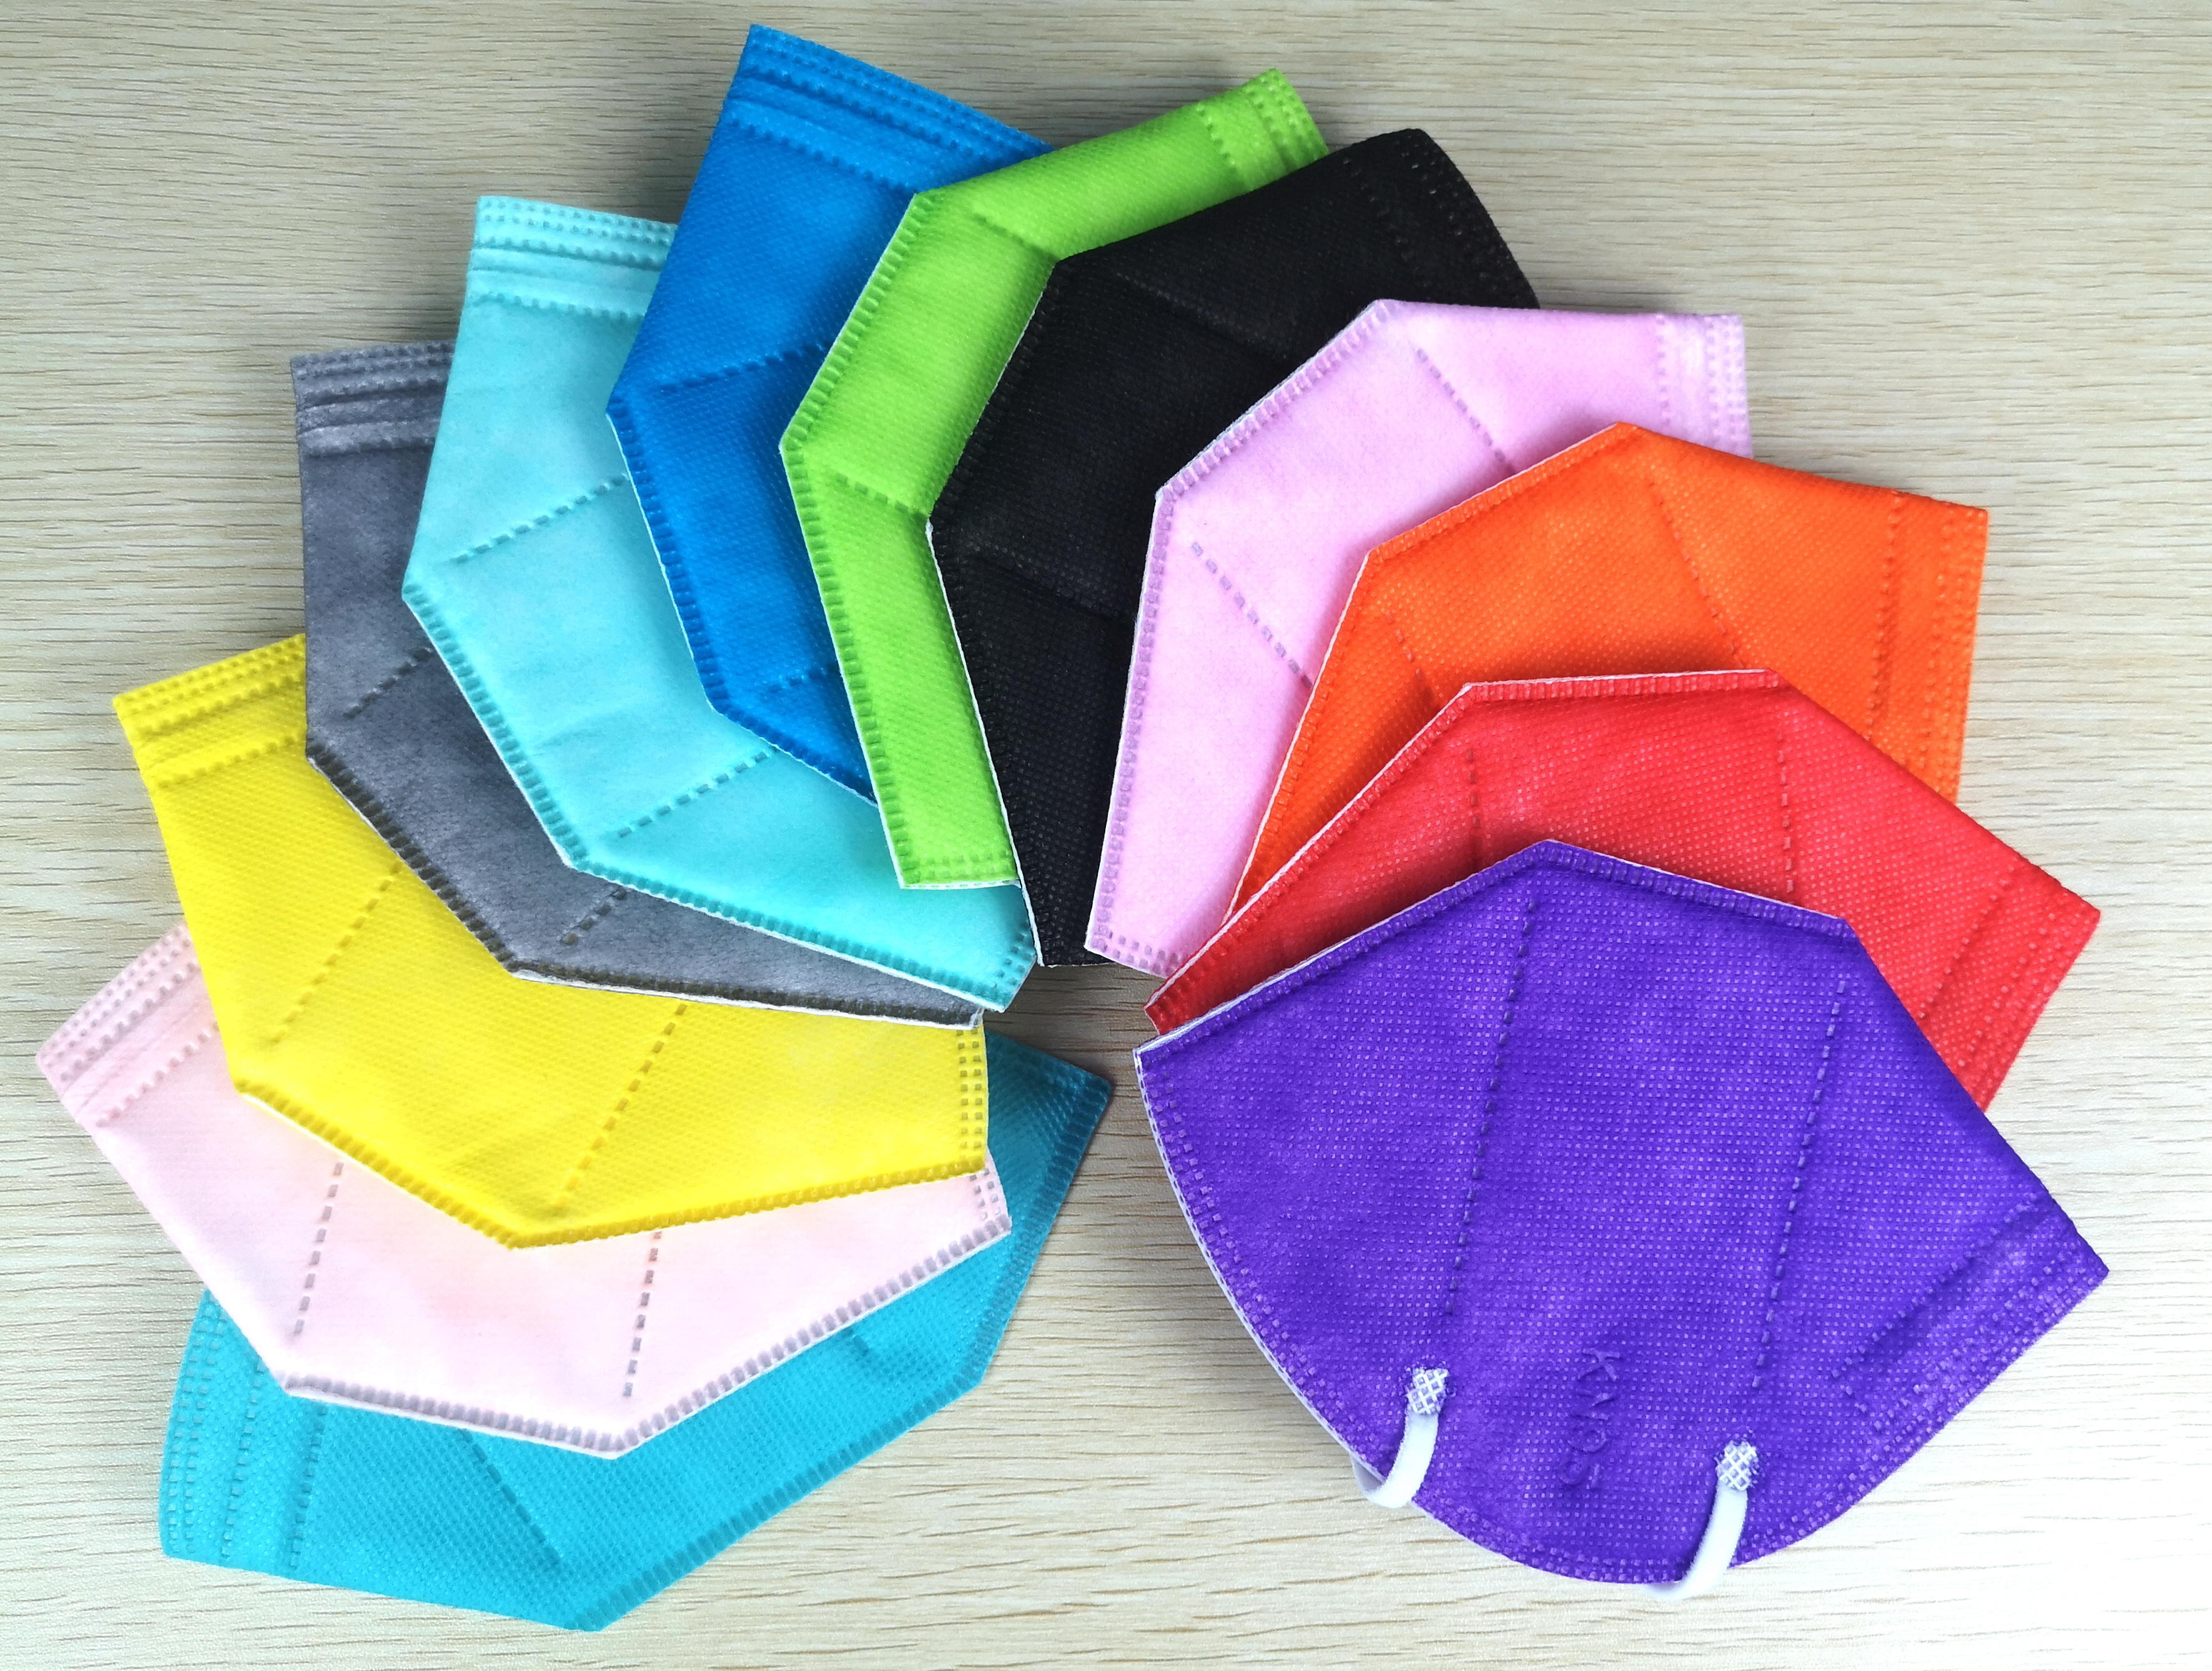 KN95 Protective Mask Non-medical In Different Colors